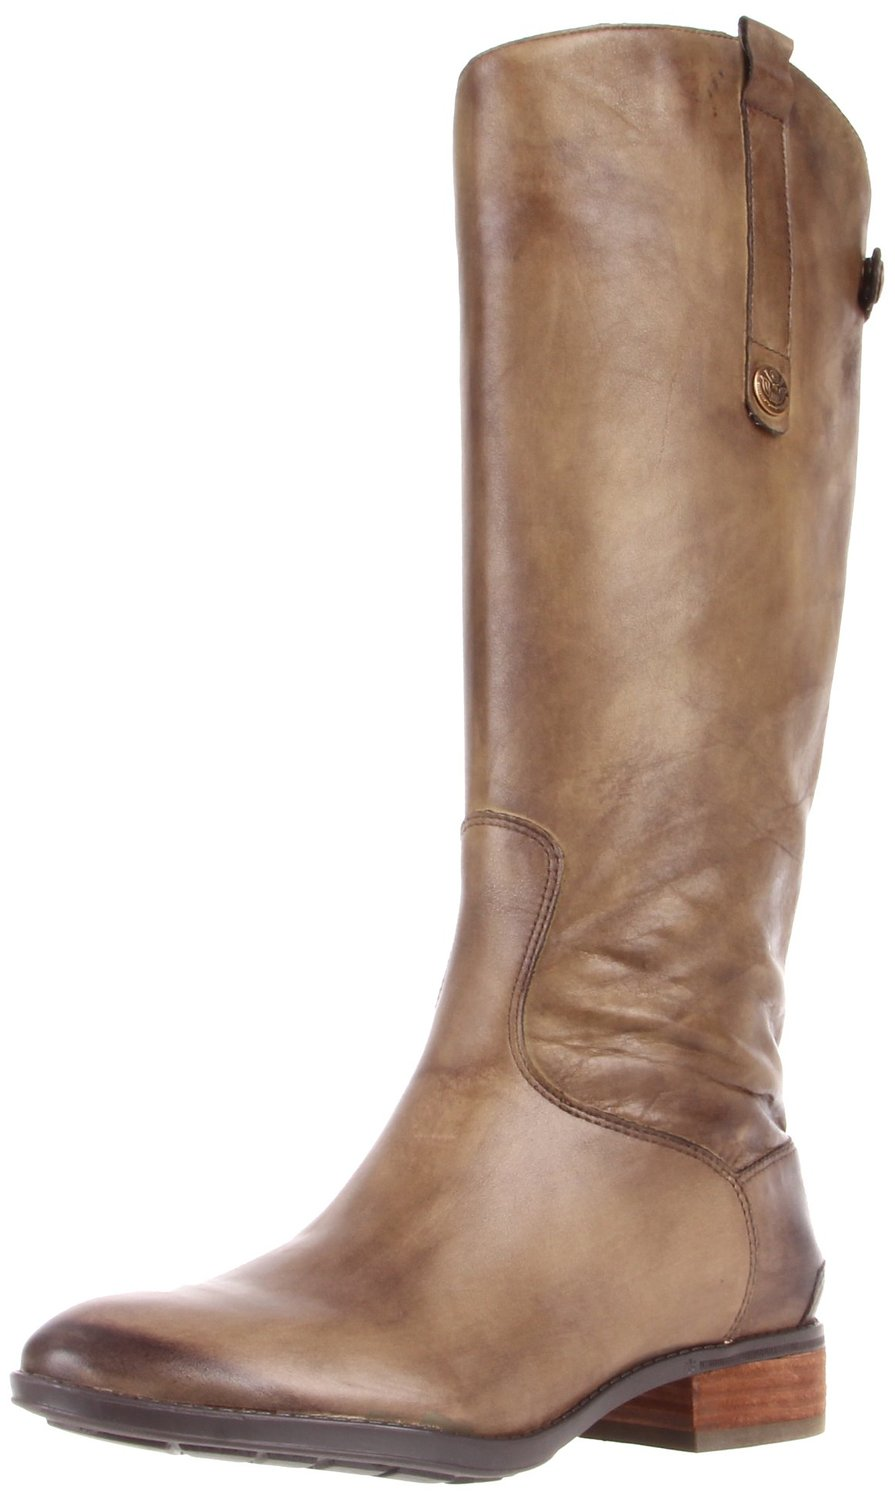 a62d57d1f Sam Edelman Penny Leather Knee High Riding Boot